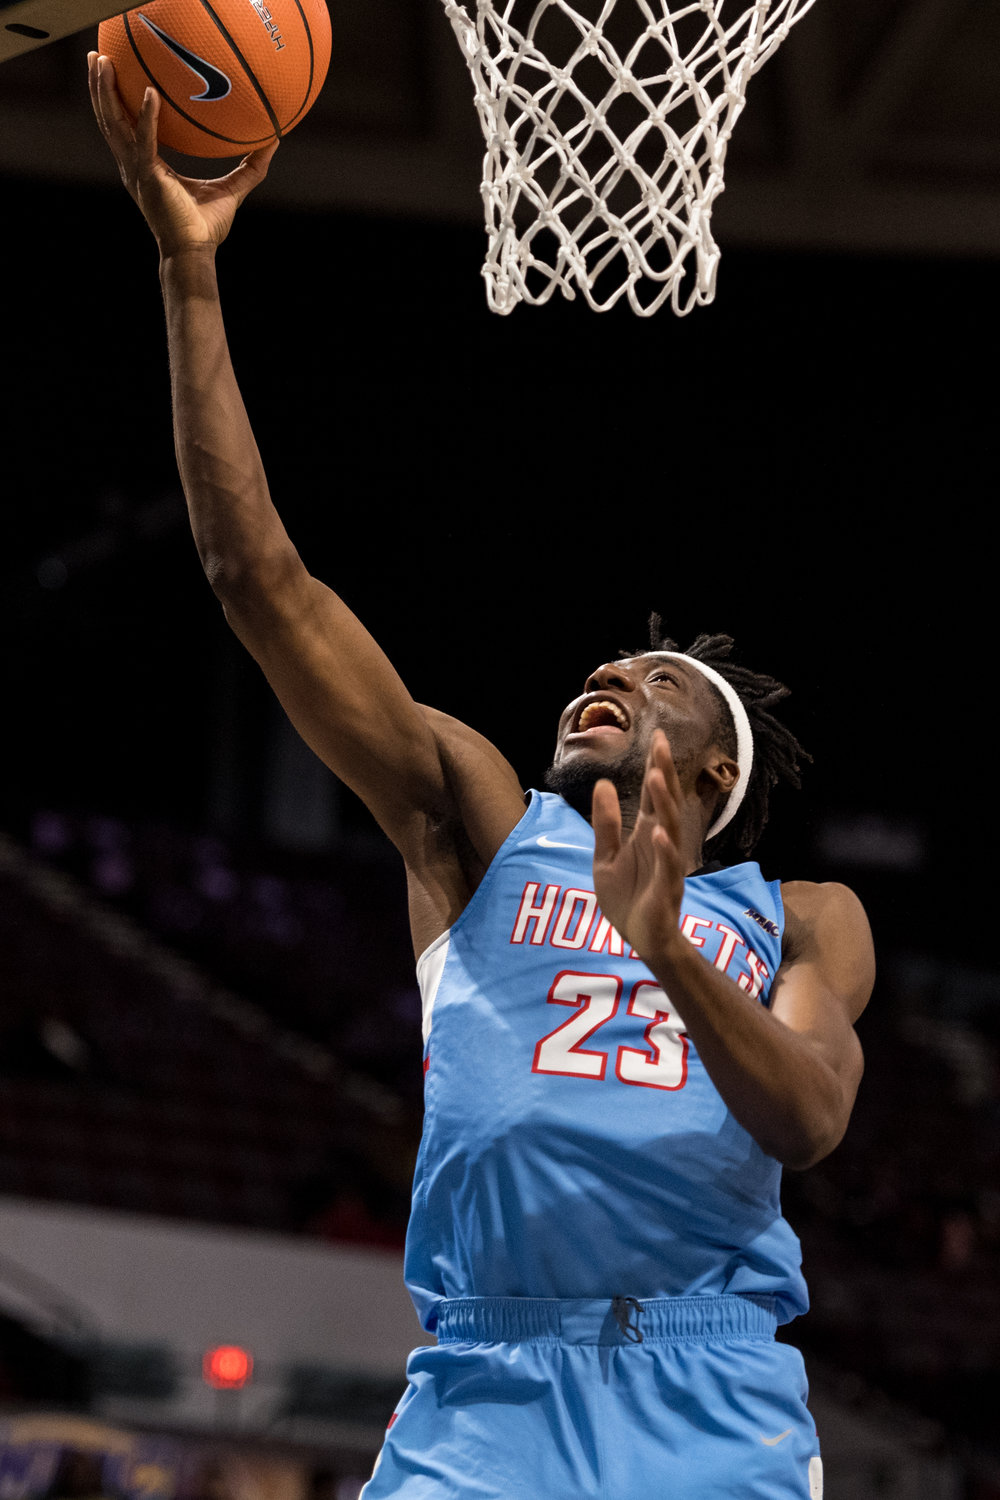 Delaware State Hornets forward Simon Okolue (23) goes up for a basket against the North Carolina A&T Aggies during the Monday, March 5, 2018 game held at Norfolk Scope Arena. North Carolina A&T defeated Delaware State 62 to 61 in overtime.